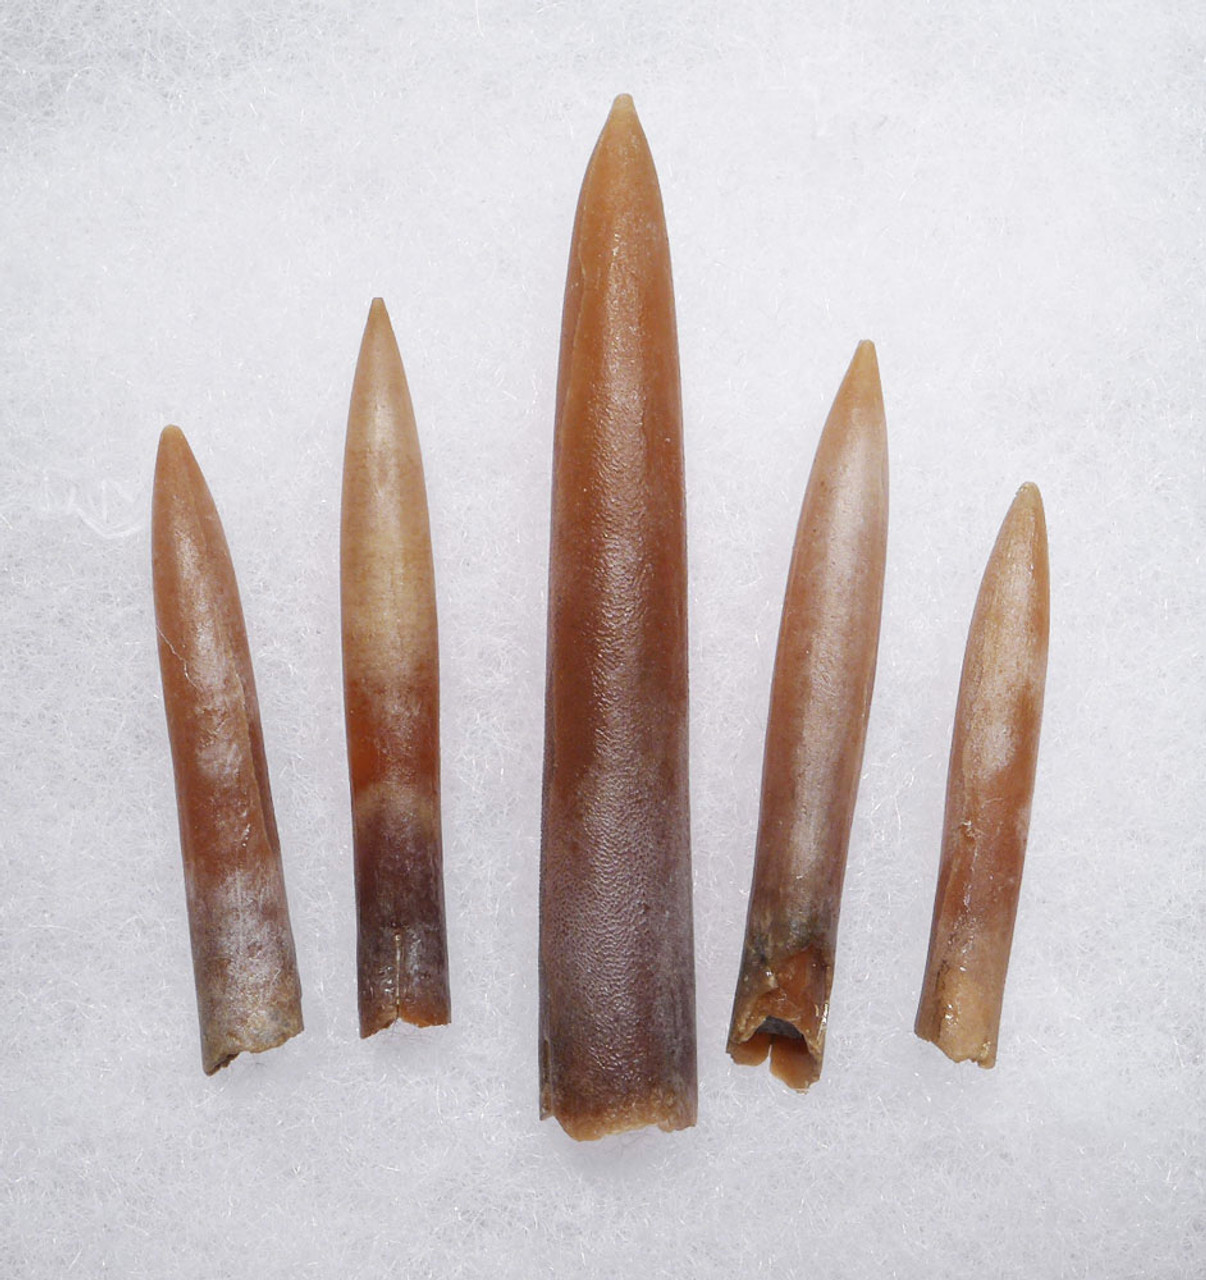 FIVE DINOSAUR ERA BELEMNITE FOSSILS OF GONIOTEUTHIS IN SOLID CALCITE *BEL109